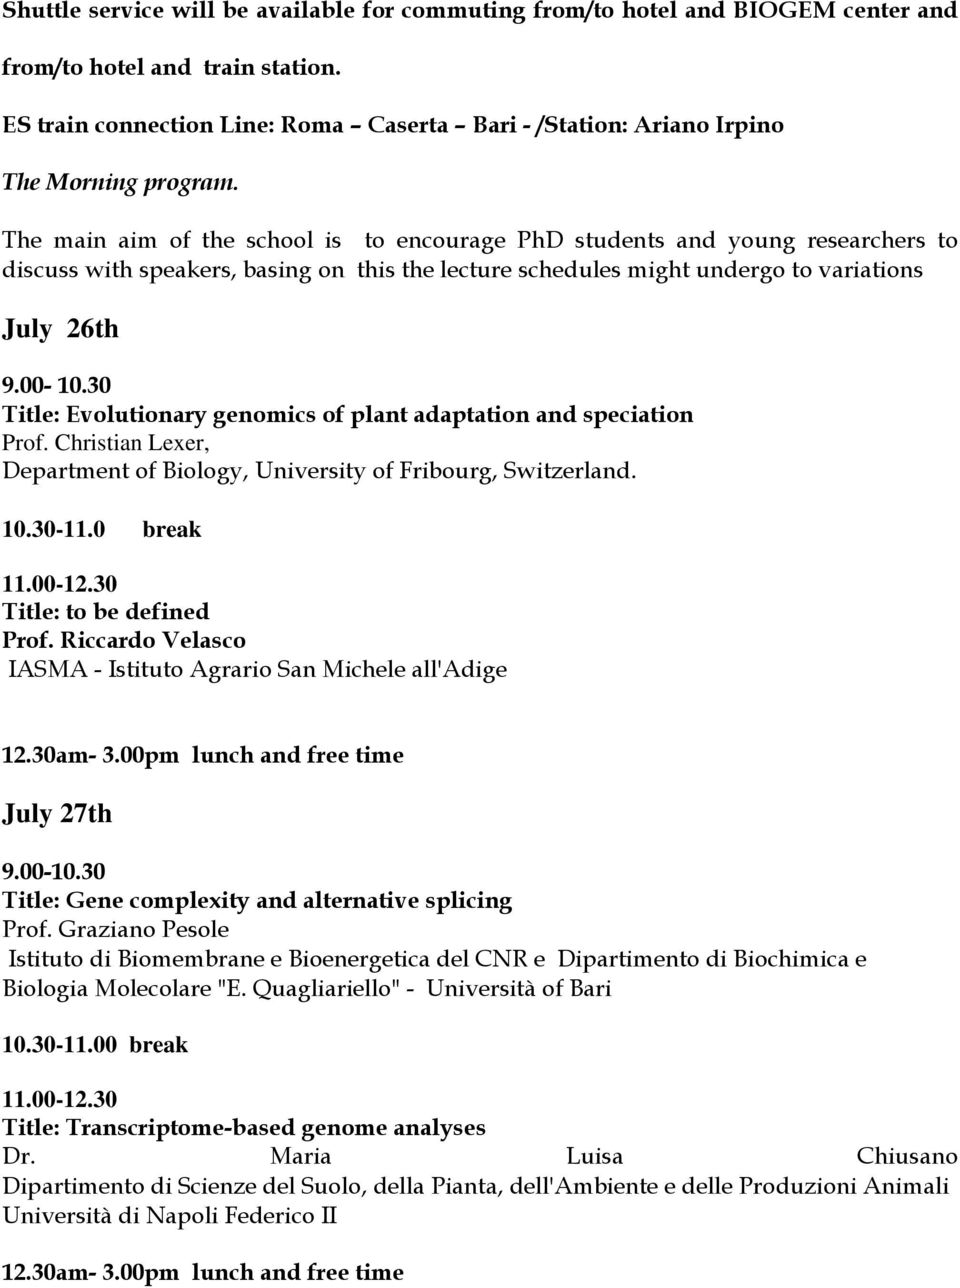 The main aim of the school is to encourage PhD students and young researchers to discuss with speakers, basing on this the lecture schedules might undergo to variations July 26th 9.00-10.